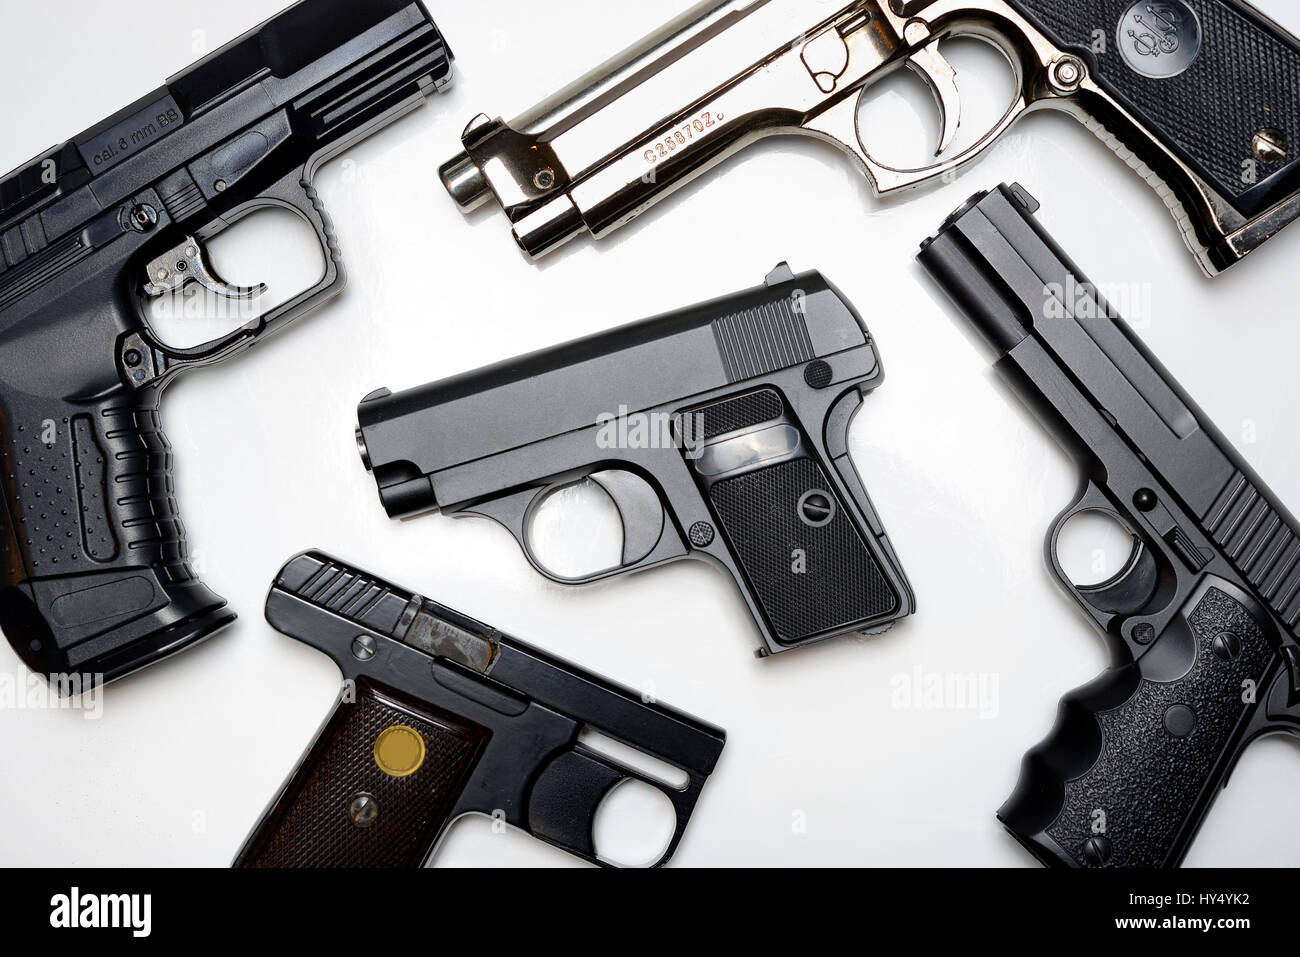 Appearance weapons, fright shot weapons and gas weapons, private armament in Germany, Anschein-, Schreckschuss- - Stock Image